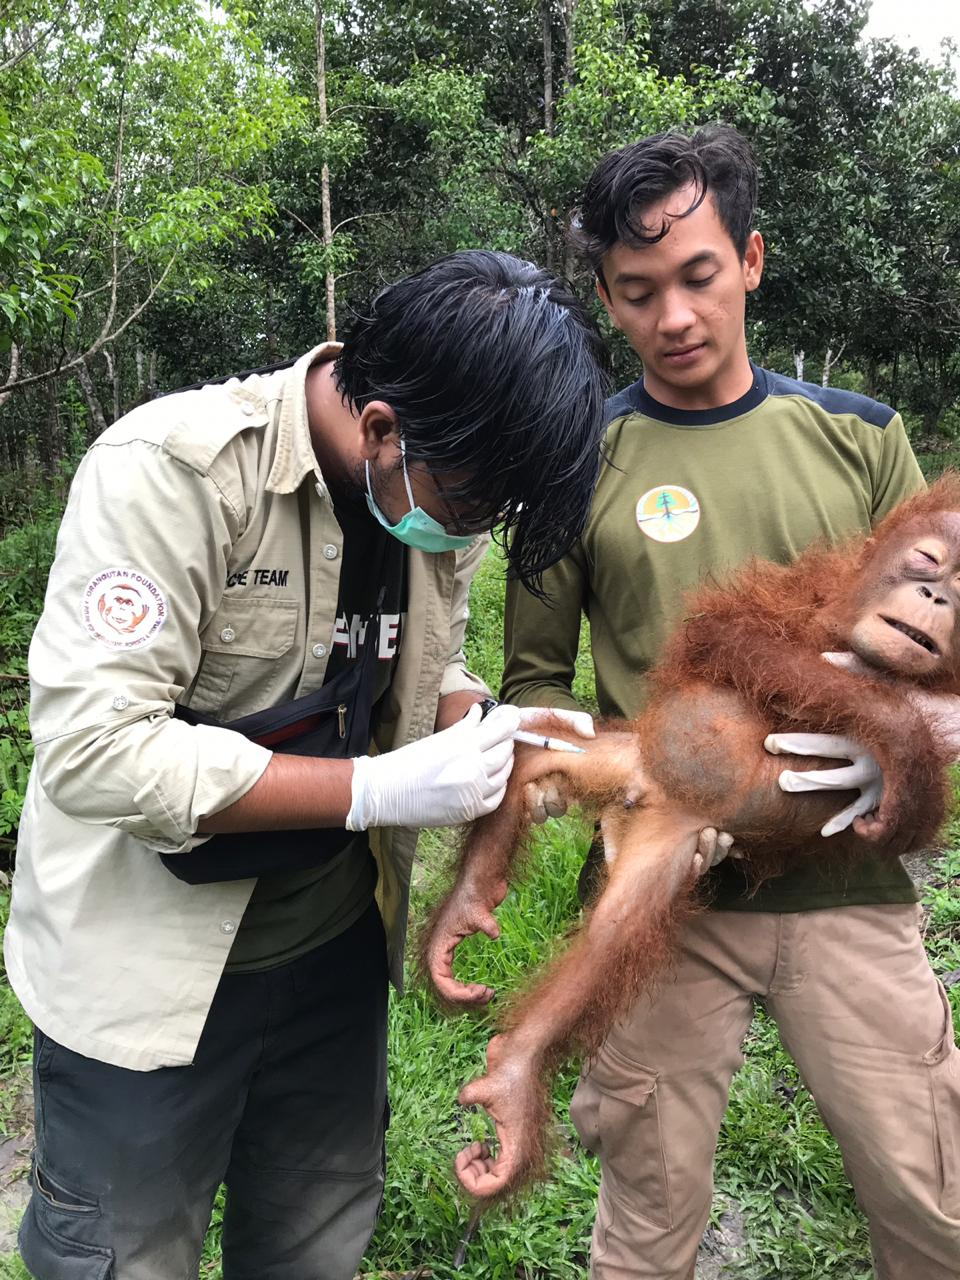 Tranquillised orangutan, named Panglima